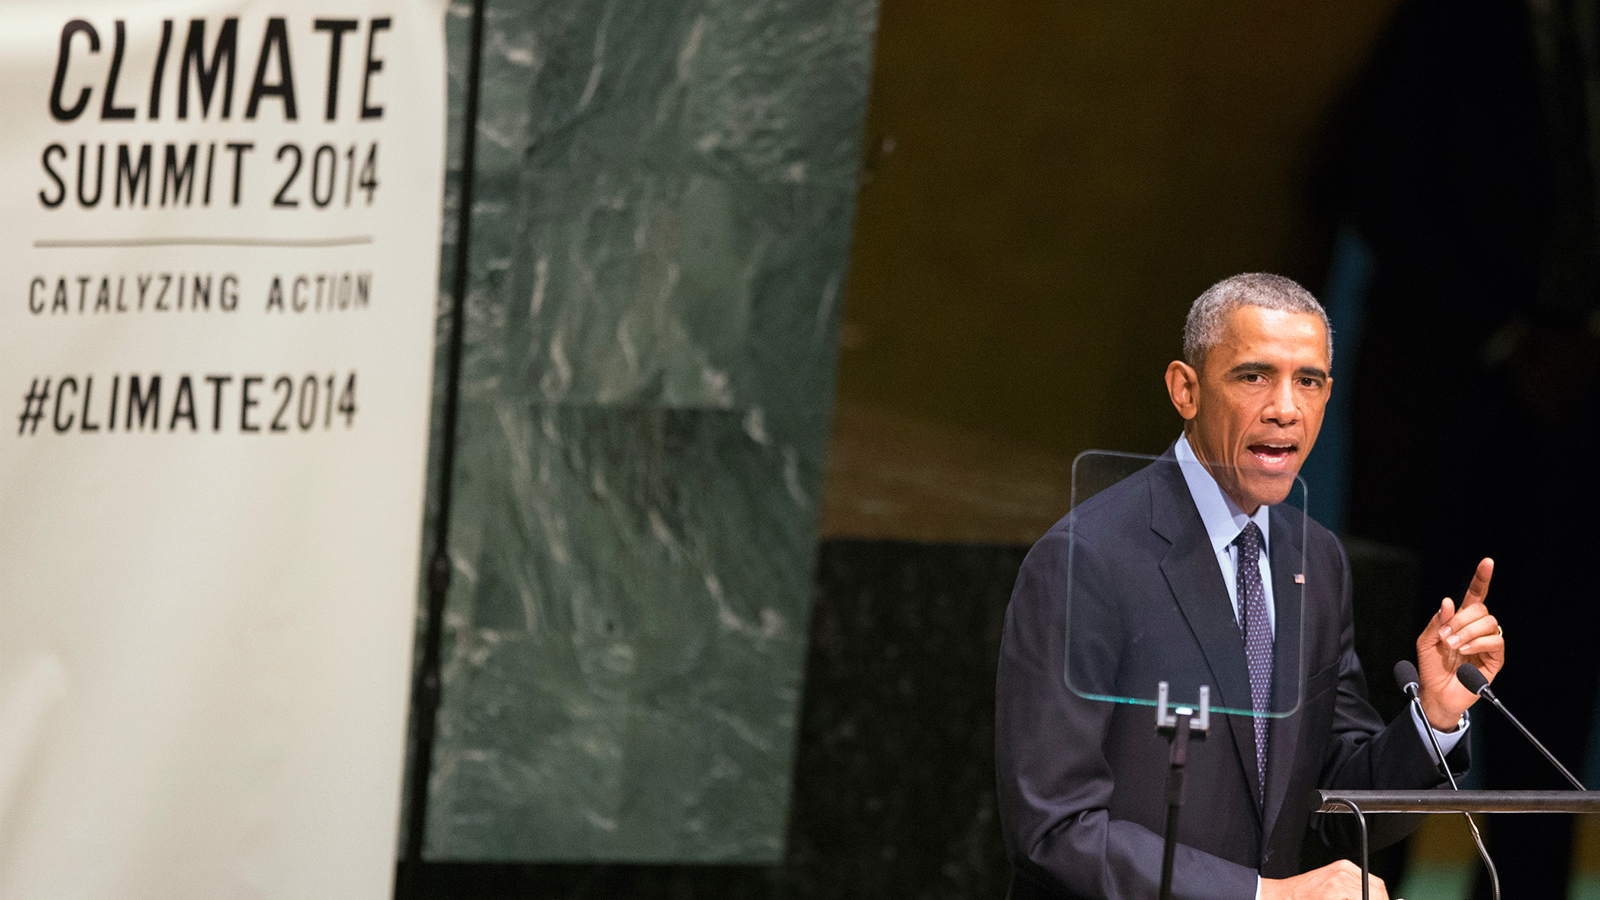 U.S. President Barack Obama speaks during the Climate Summit at the U.N. headquarters in New York September 23, 2014.